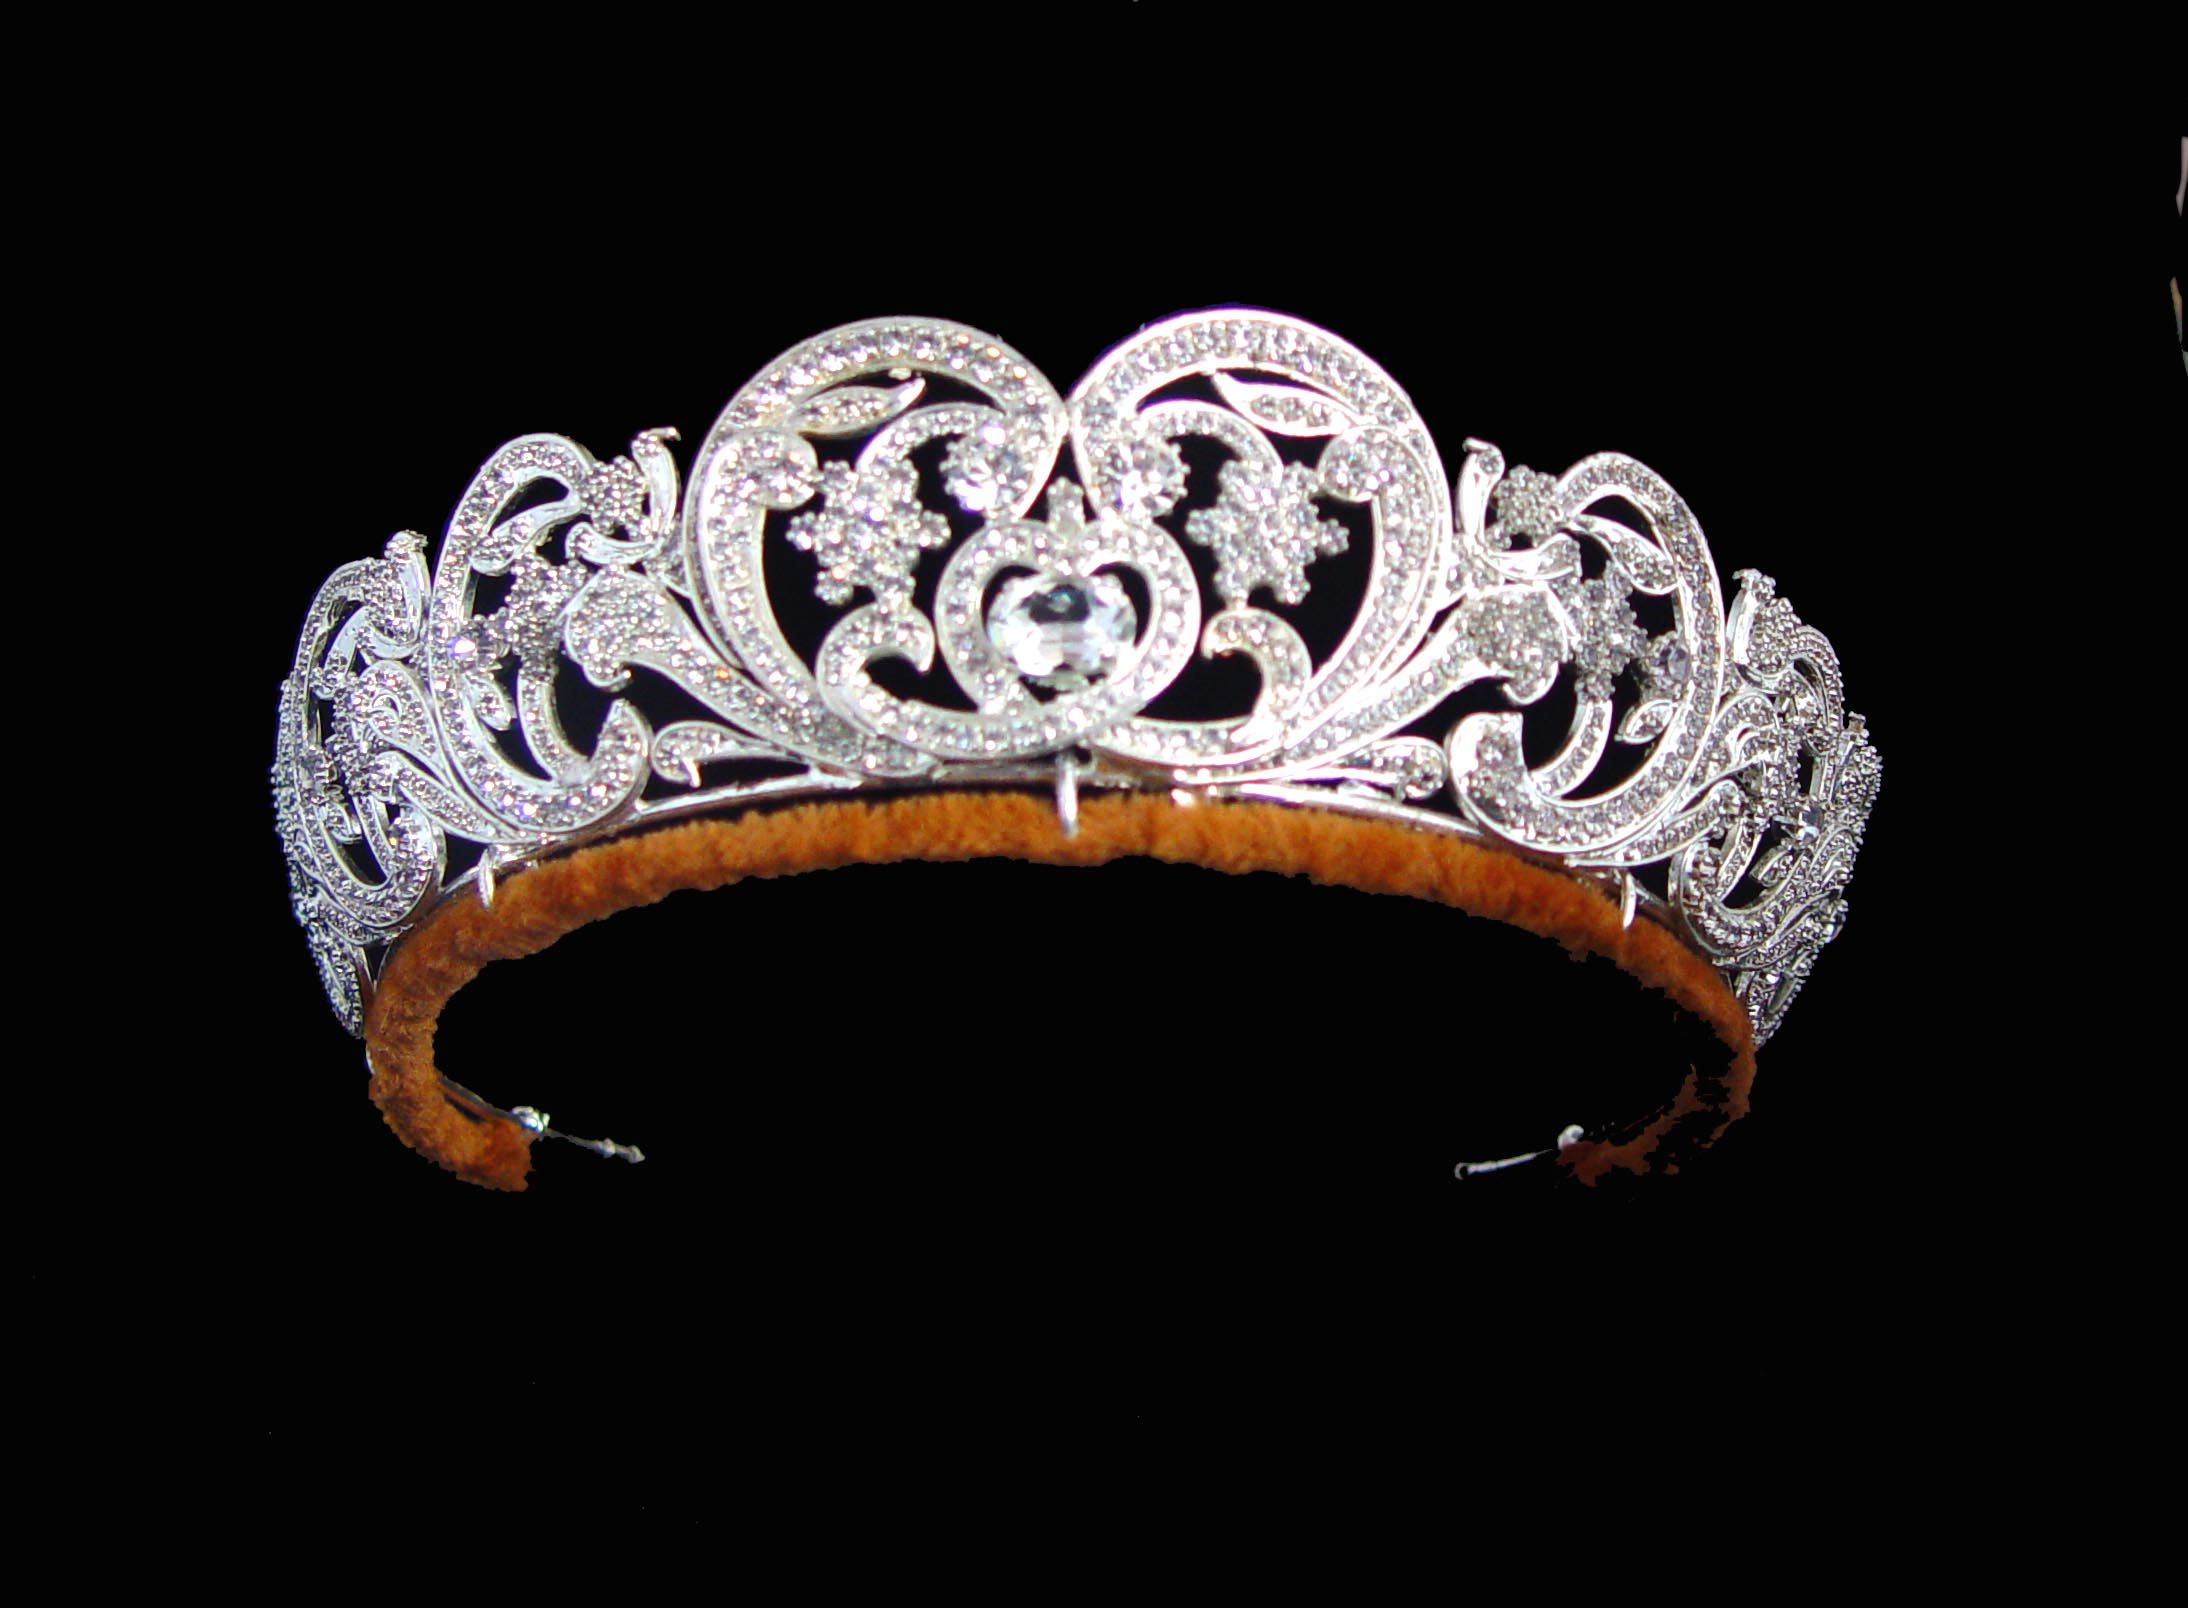 The Spencer Tiara The Spencer Tiara is mounted in gold